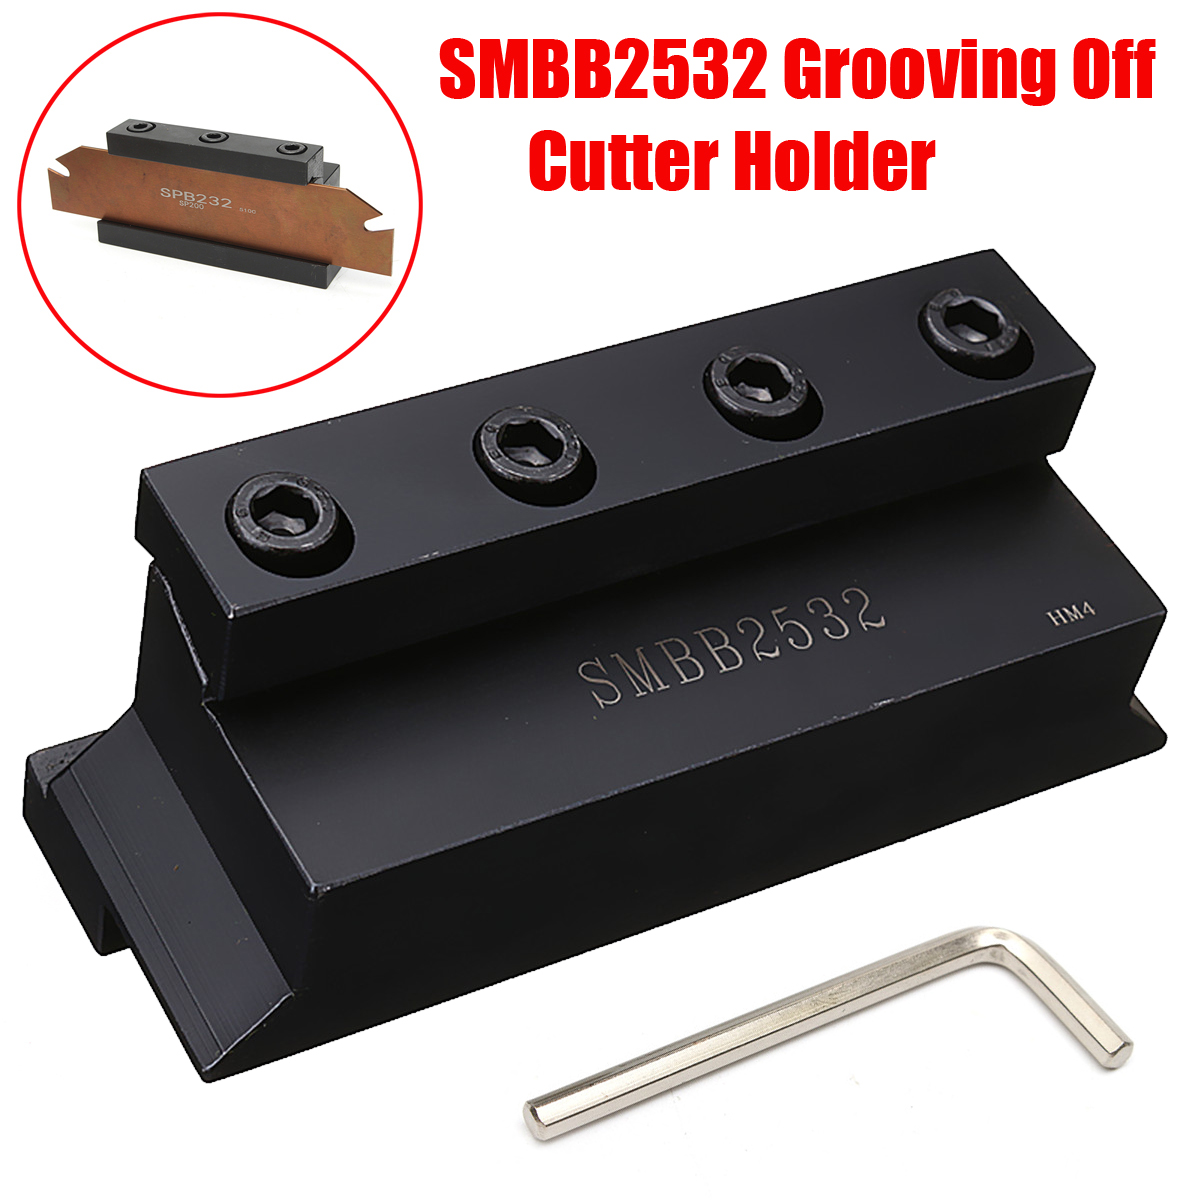 New 1Pc SMBB2532 Cut-Off Blade Holder 25mm for Lathe Cutting Tool with T Wrench for CNC Milling Cutter Tool free shiping smbb 2526 part off block indexable parting off tool stand holder 25mm high blade 26mm tool post for lathe